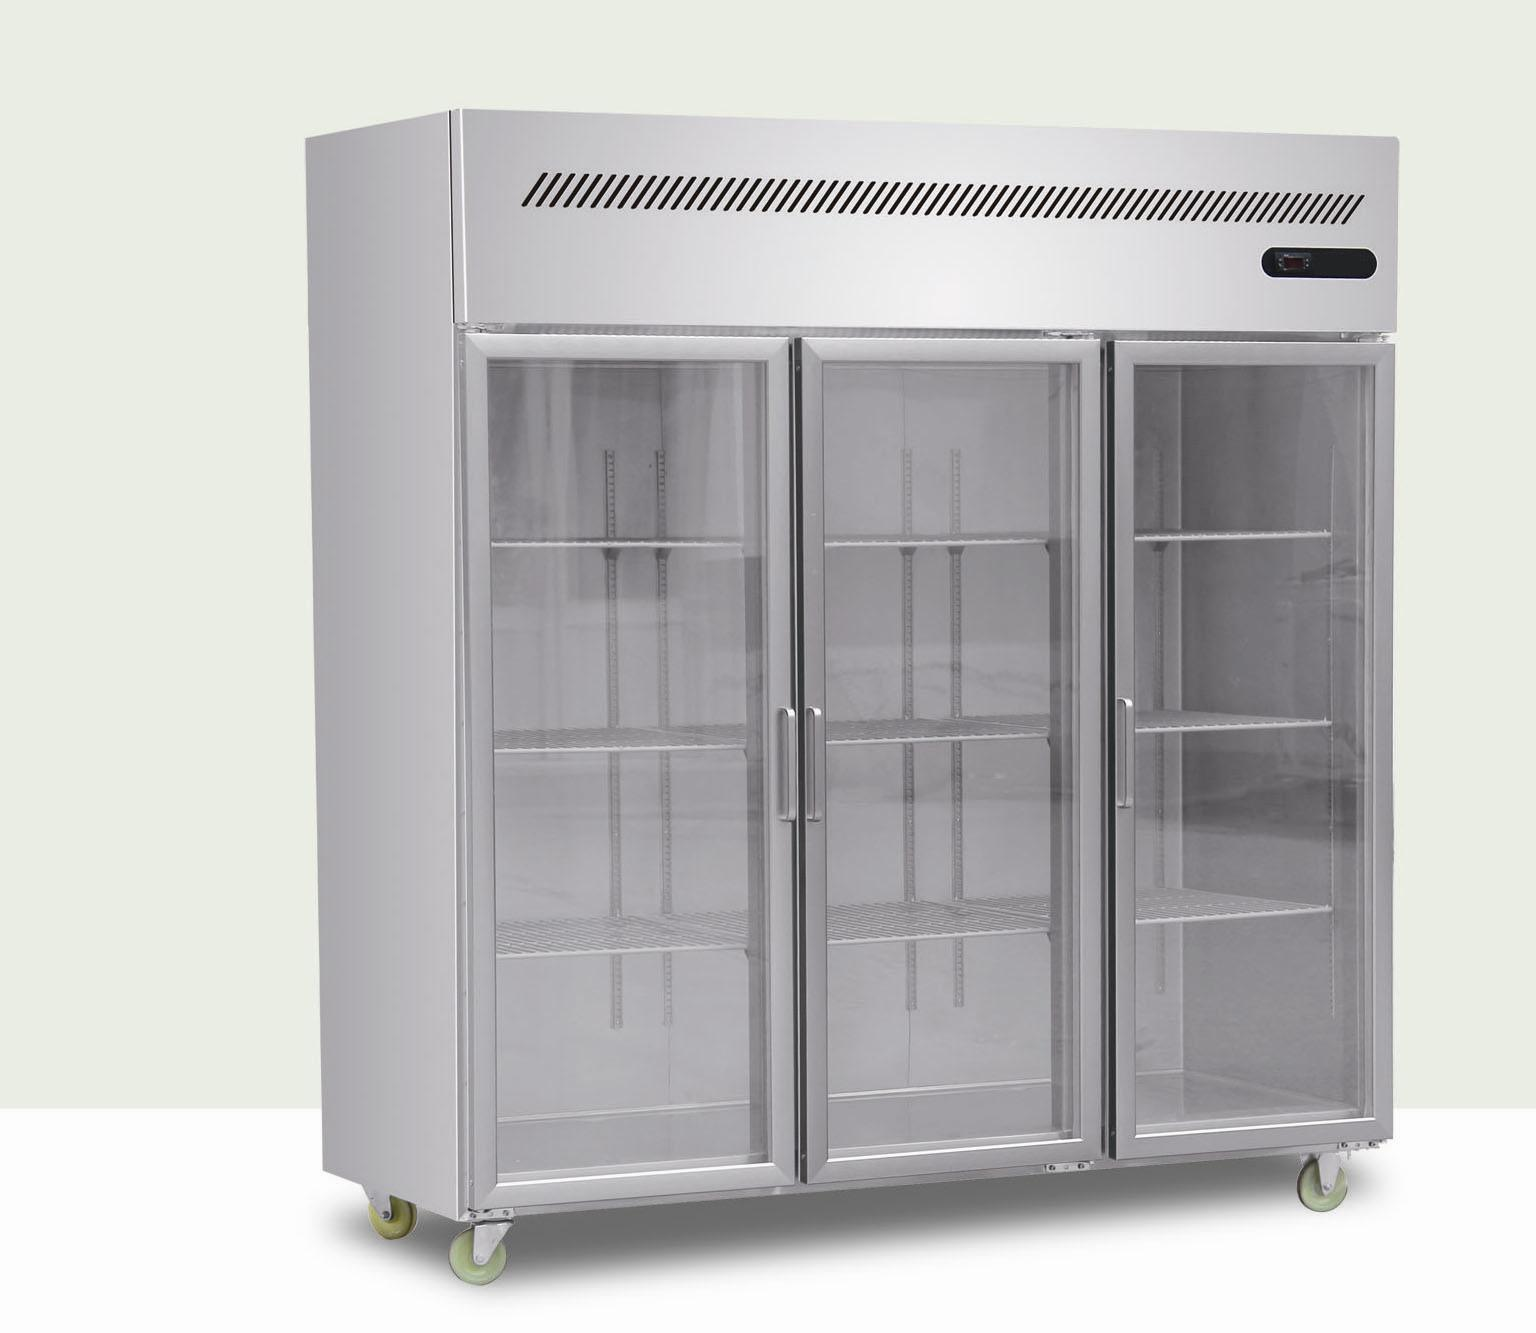 China upright freezer with glass door china three glass door refrigerator stainless steel - Glass door refrigerator freezer ...